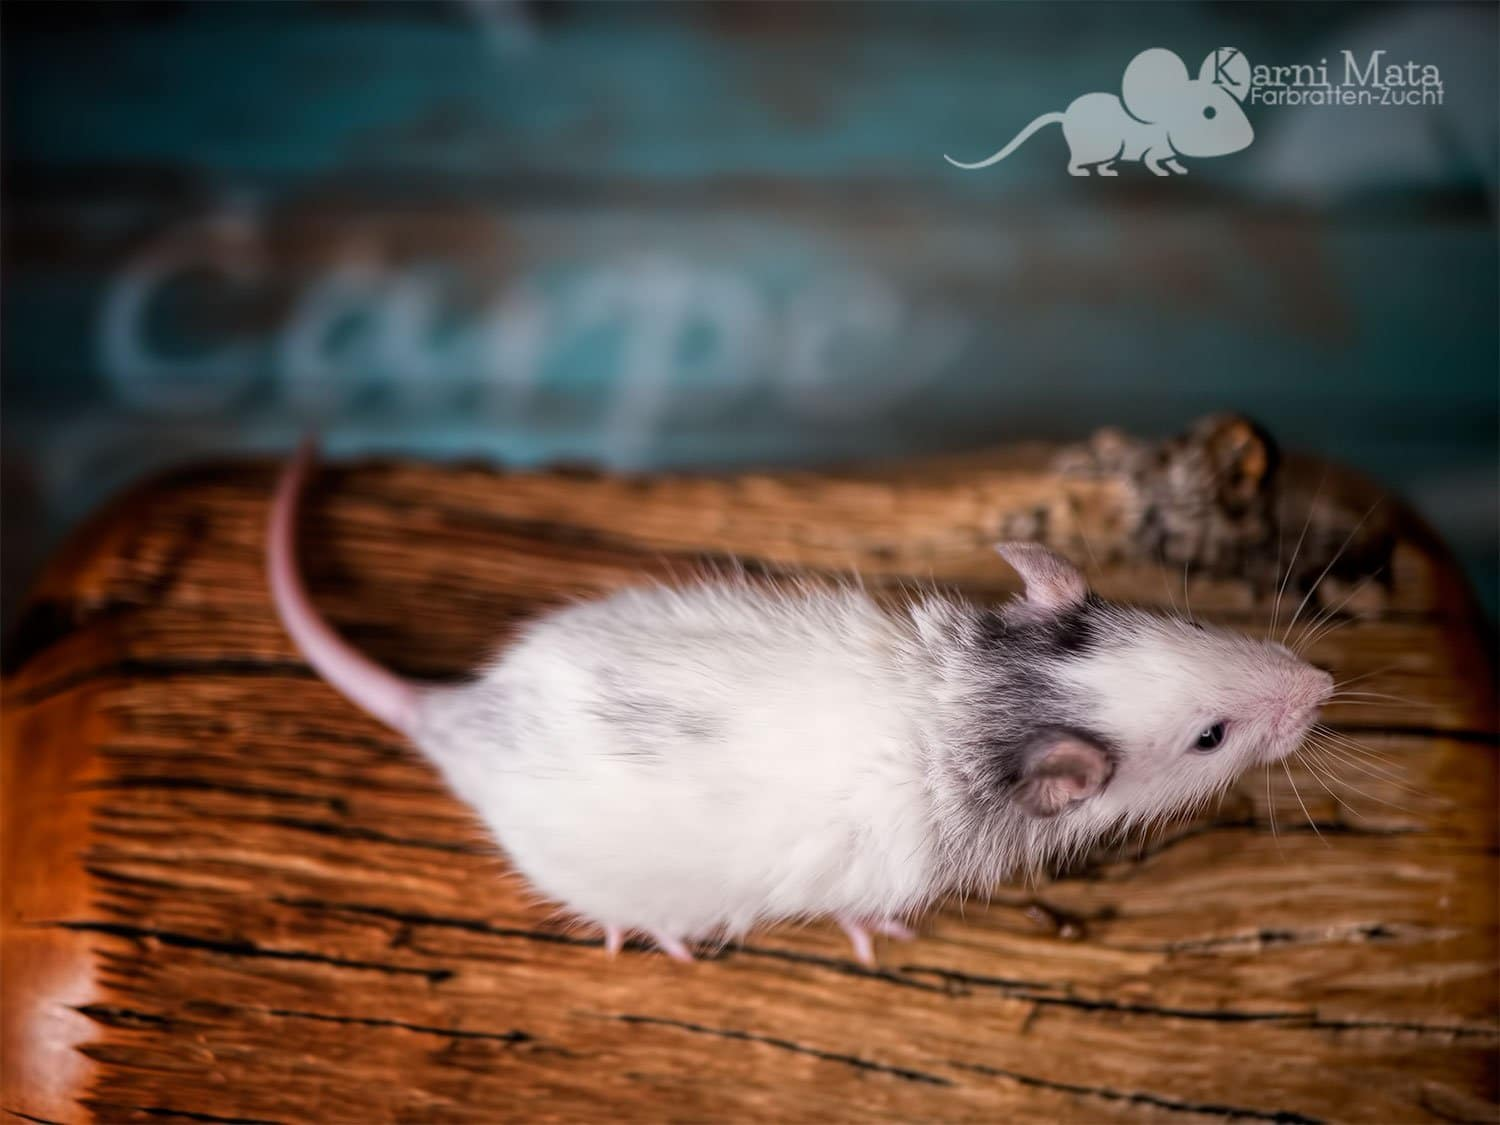 Ratte Hanibal, Black Patched opossum Variegated Mismarked het. Harley